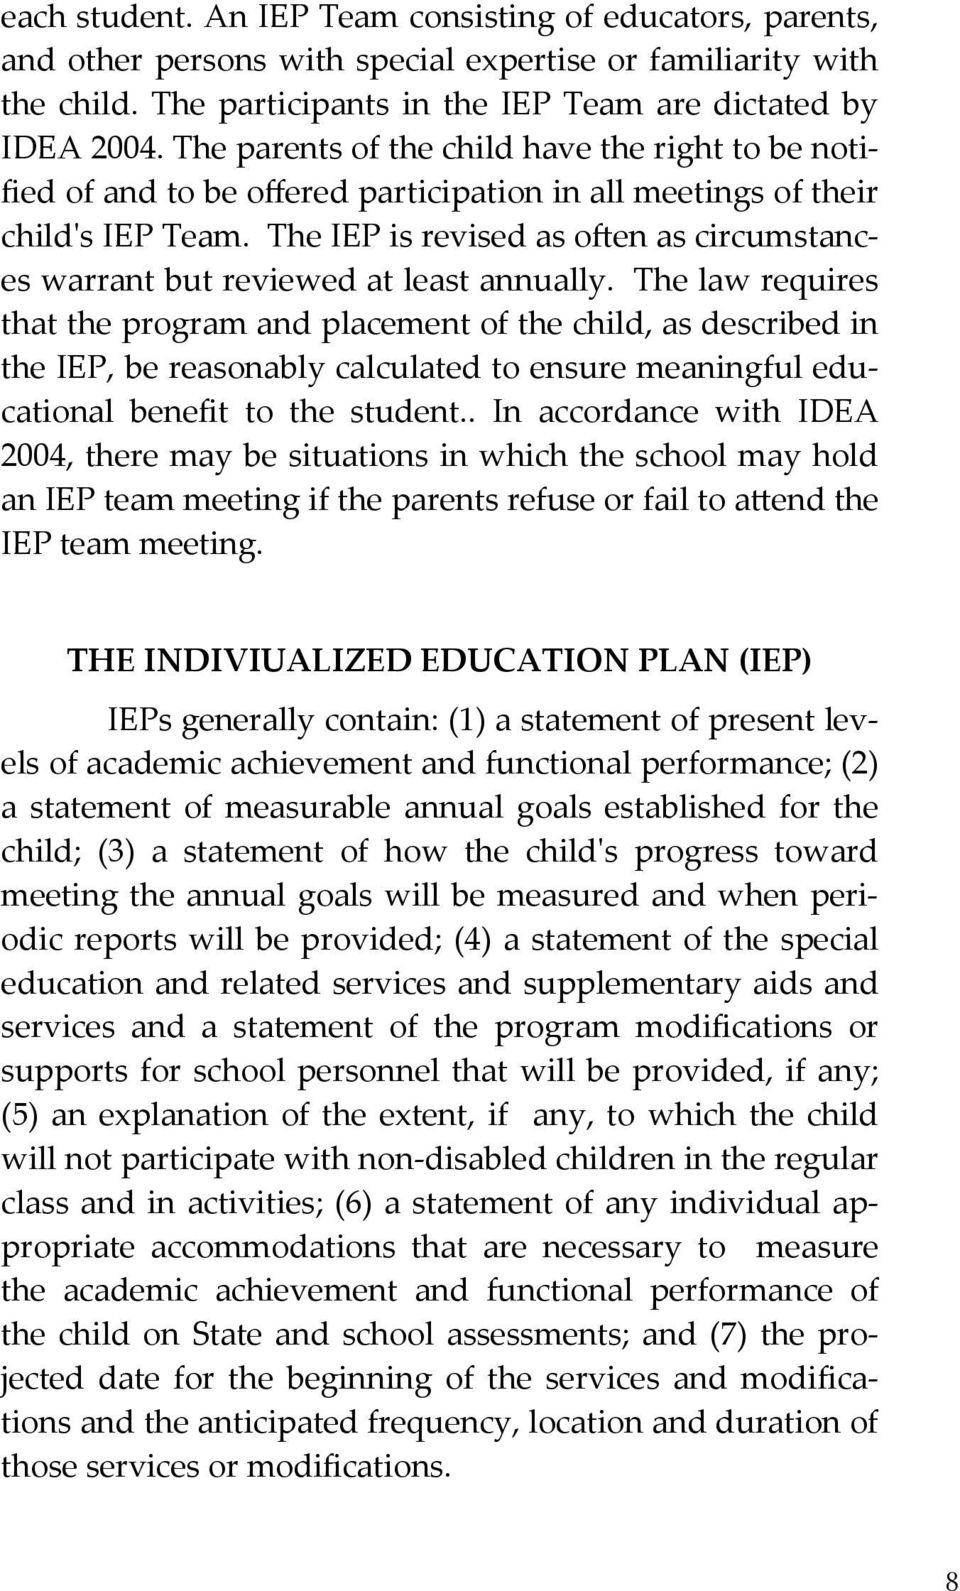 The IEP is revised as ogen as circumstances warrant but reviewed at least annually.